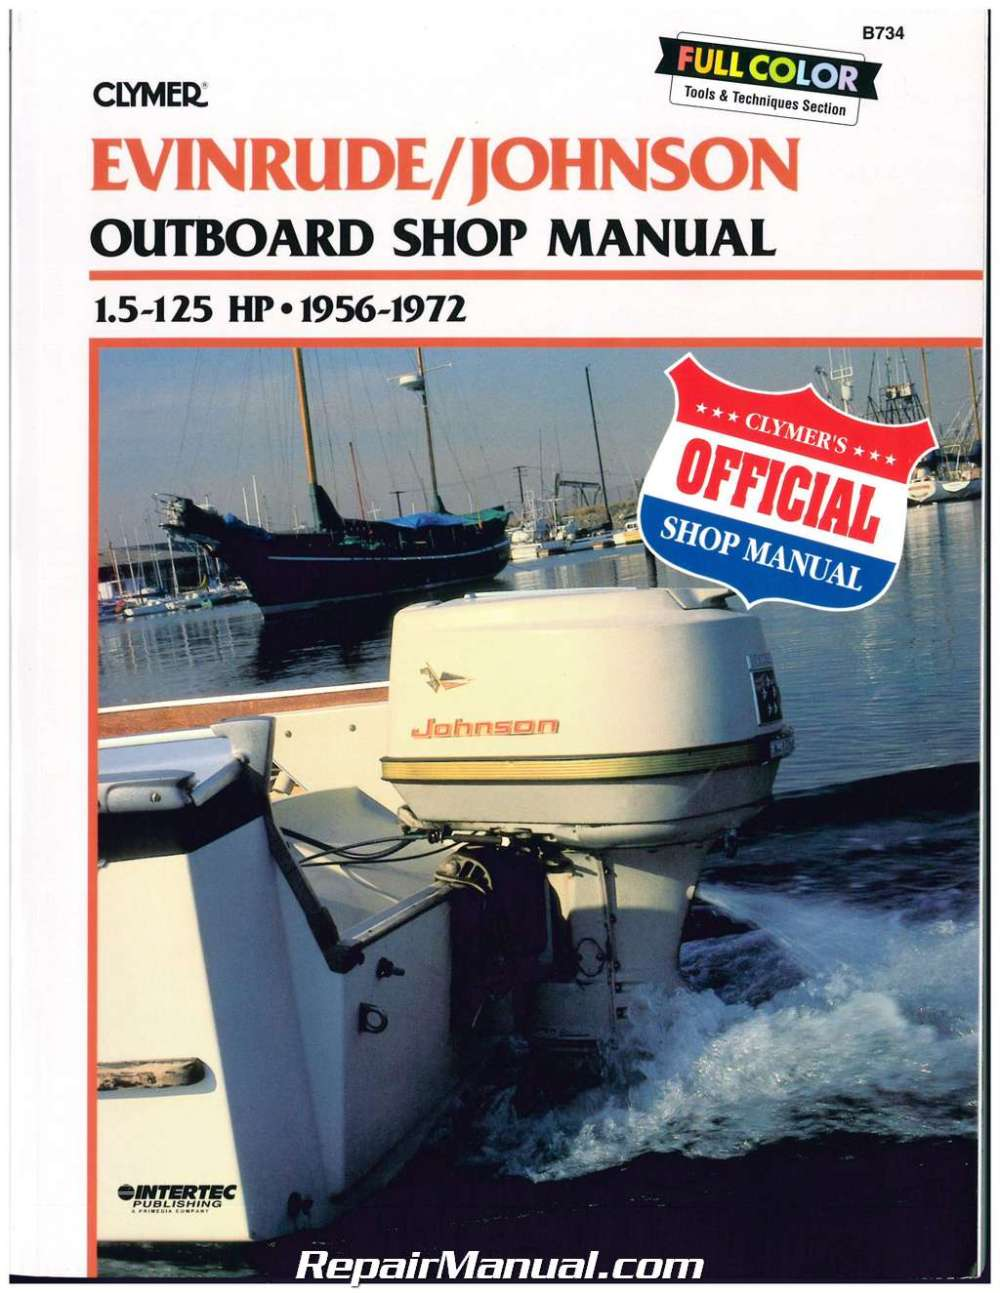 medium resolution of clymer evinrude johnson 1 5 125 hp 1956 1972 outboard boat engine service manual